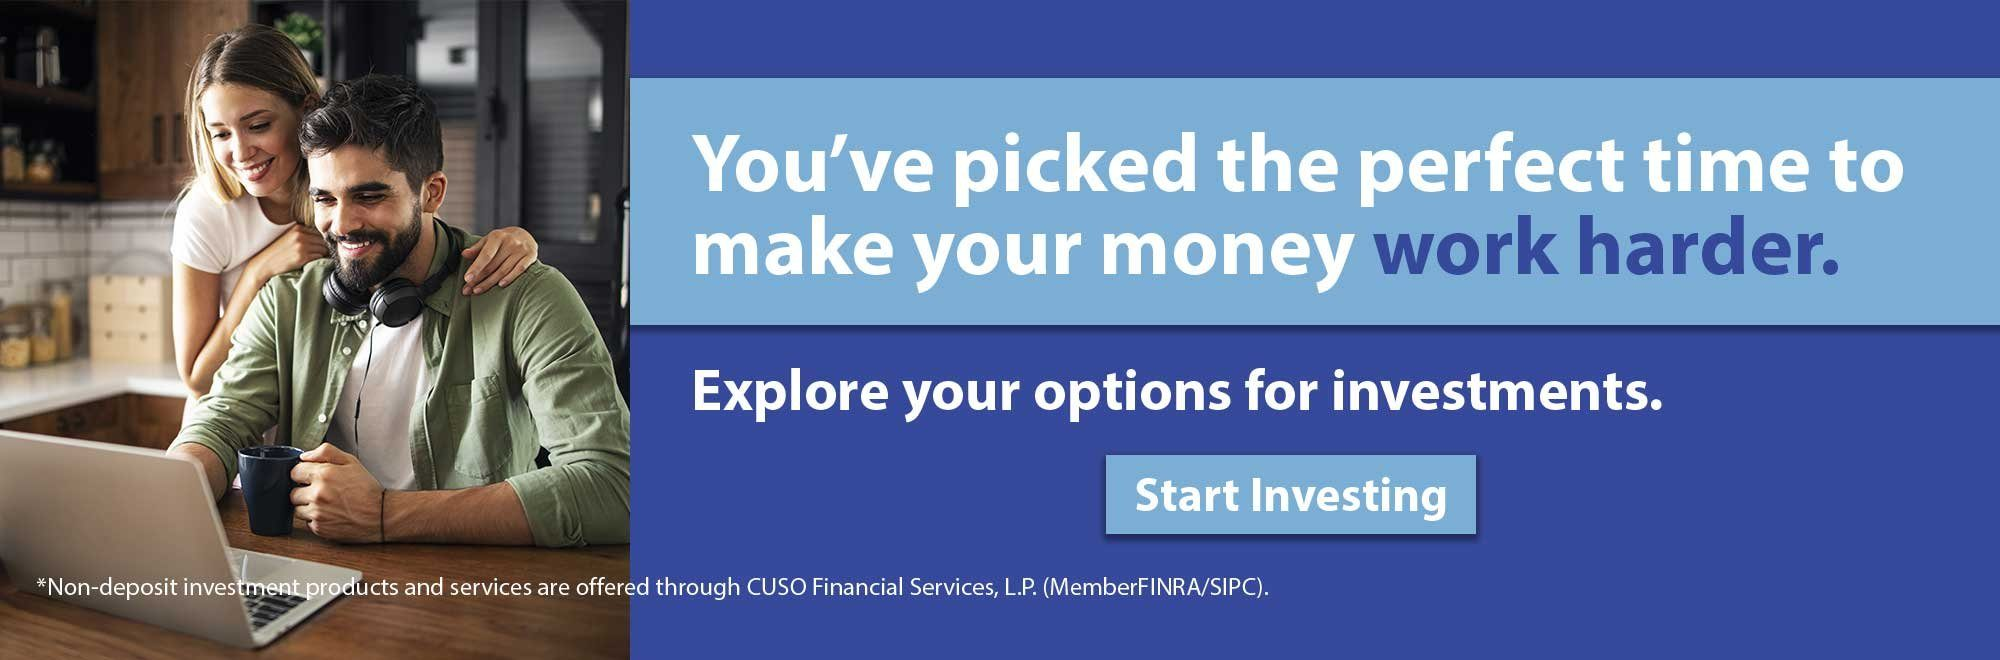 You've picked the perfect time to make your money work harder. Start Investing.